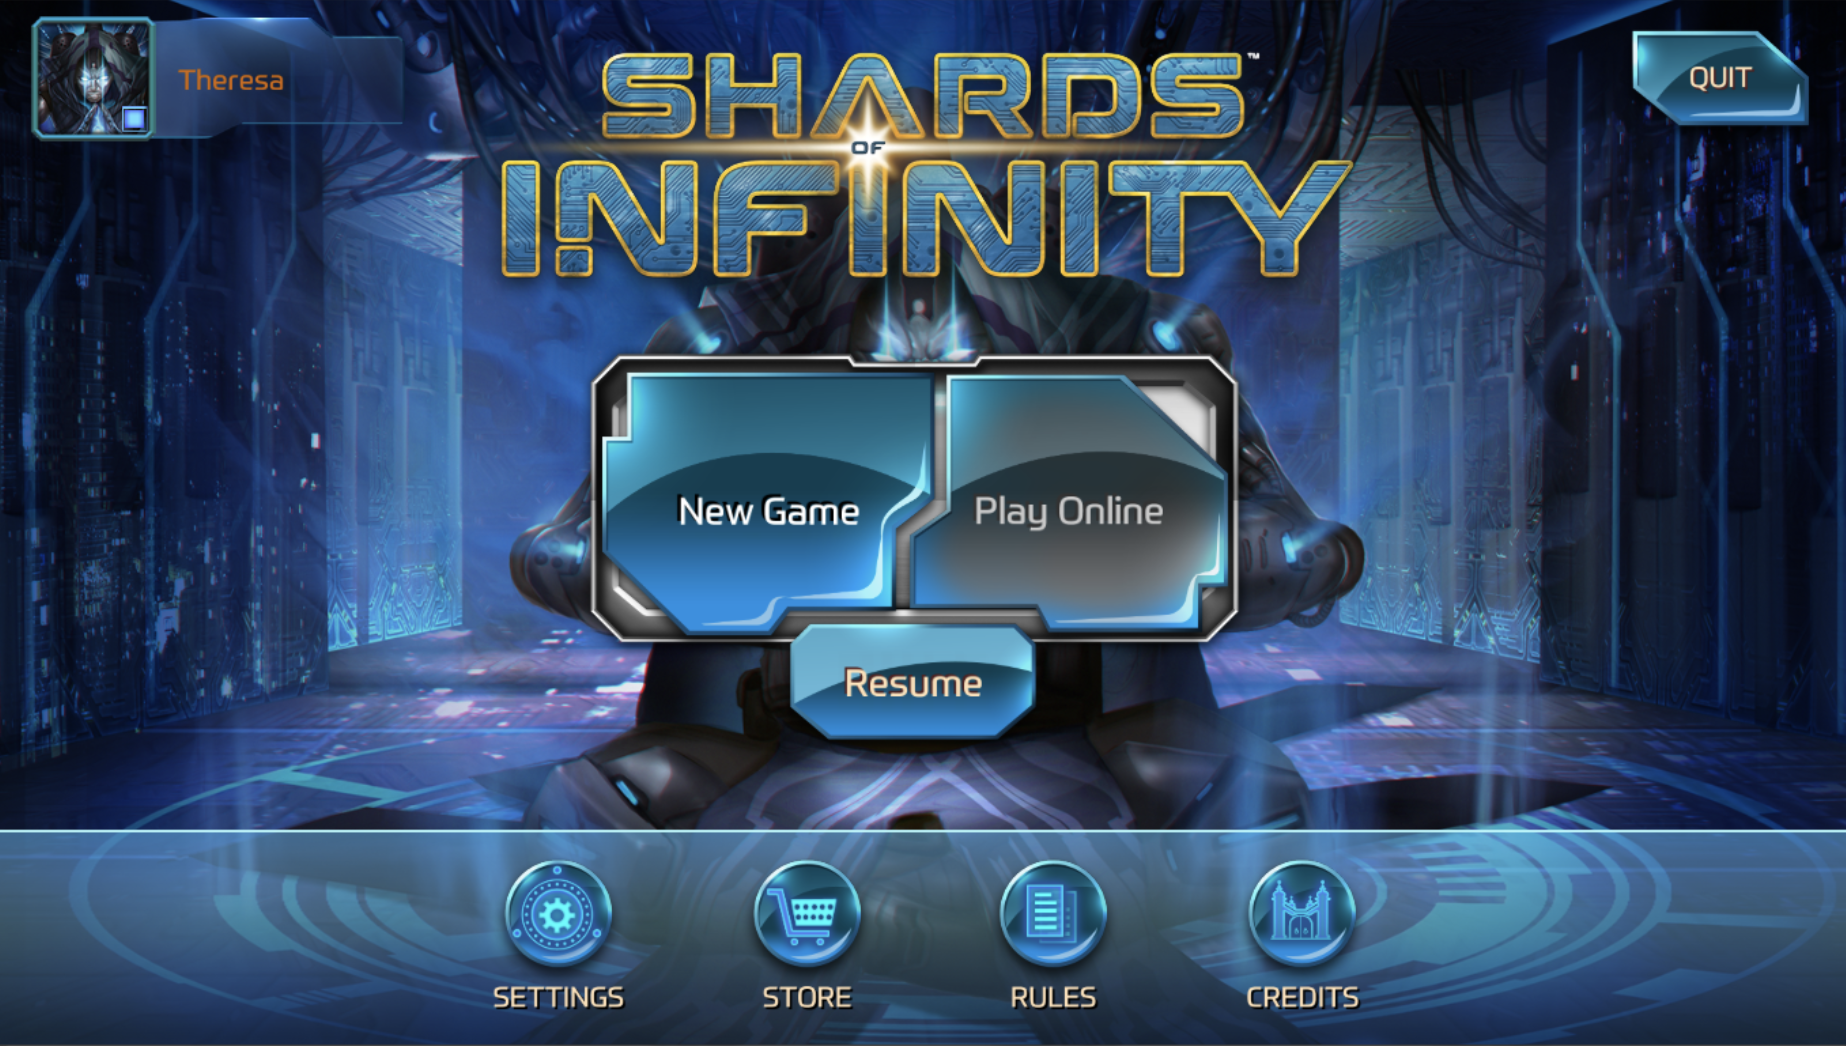 Shards of Infinity Online App